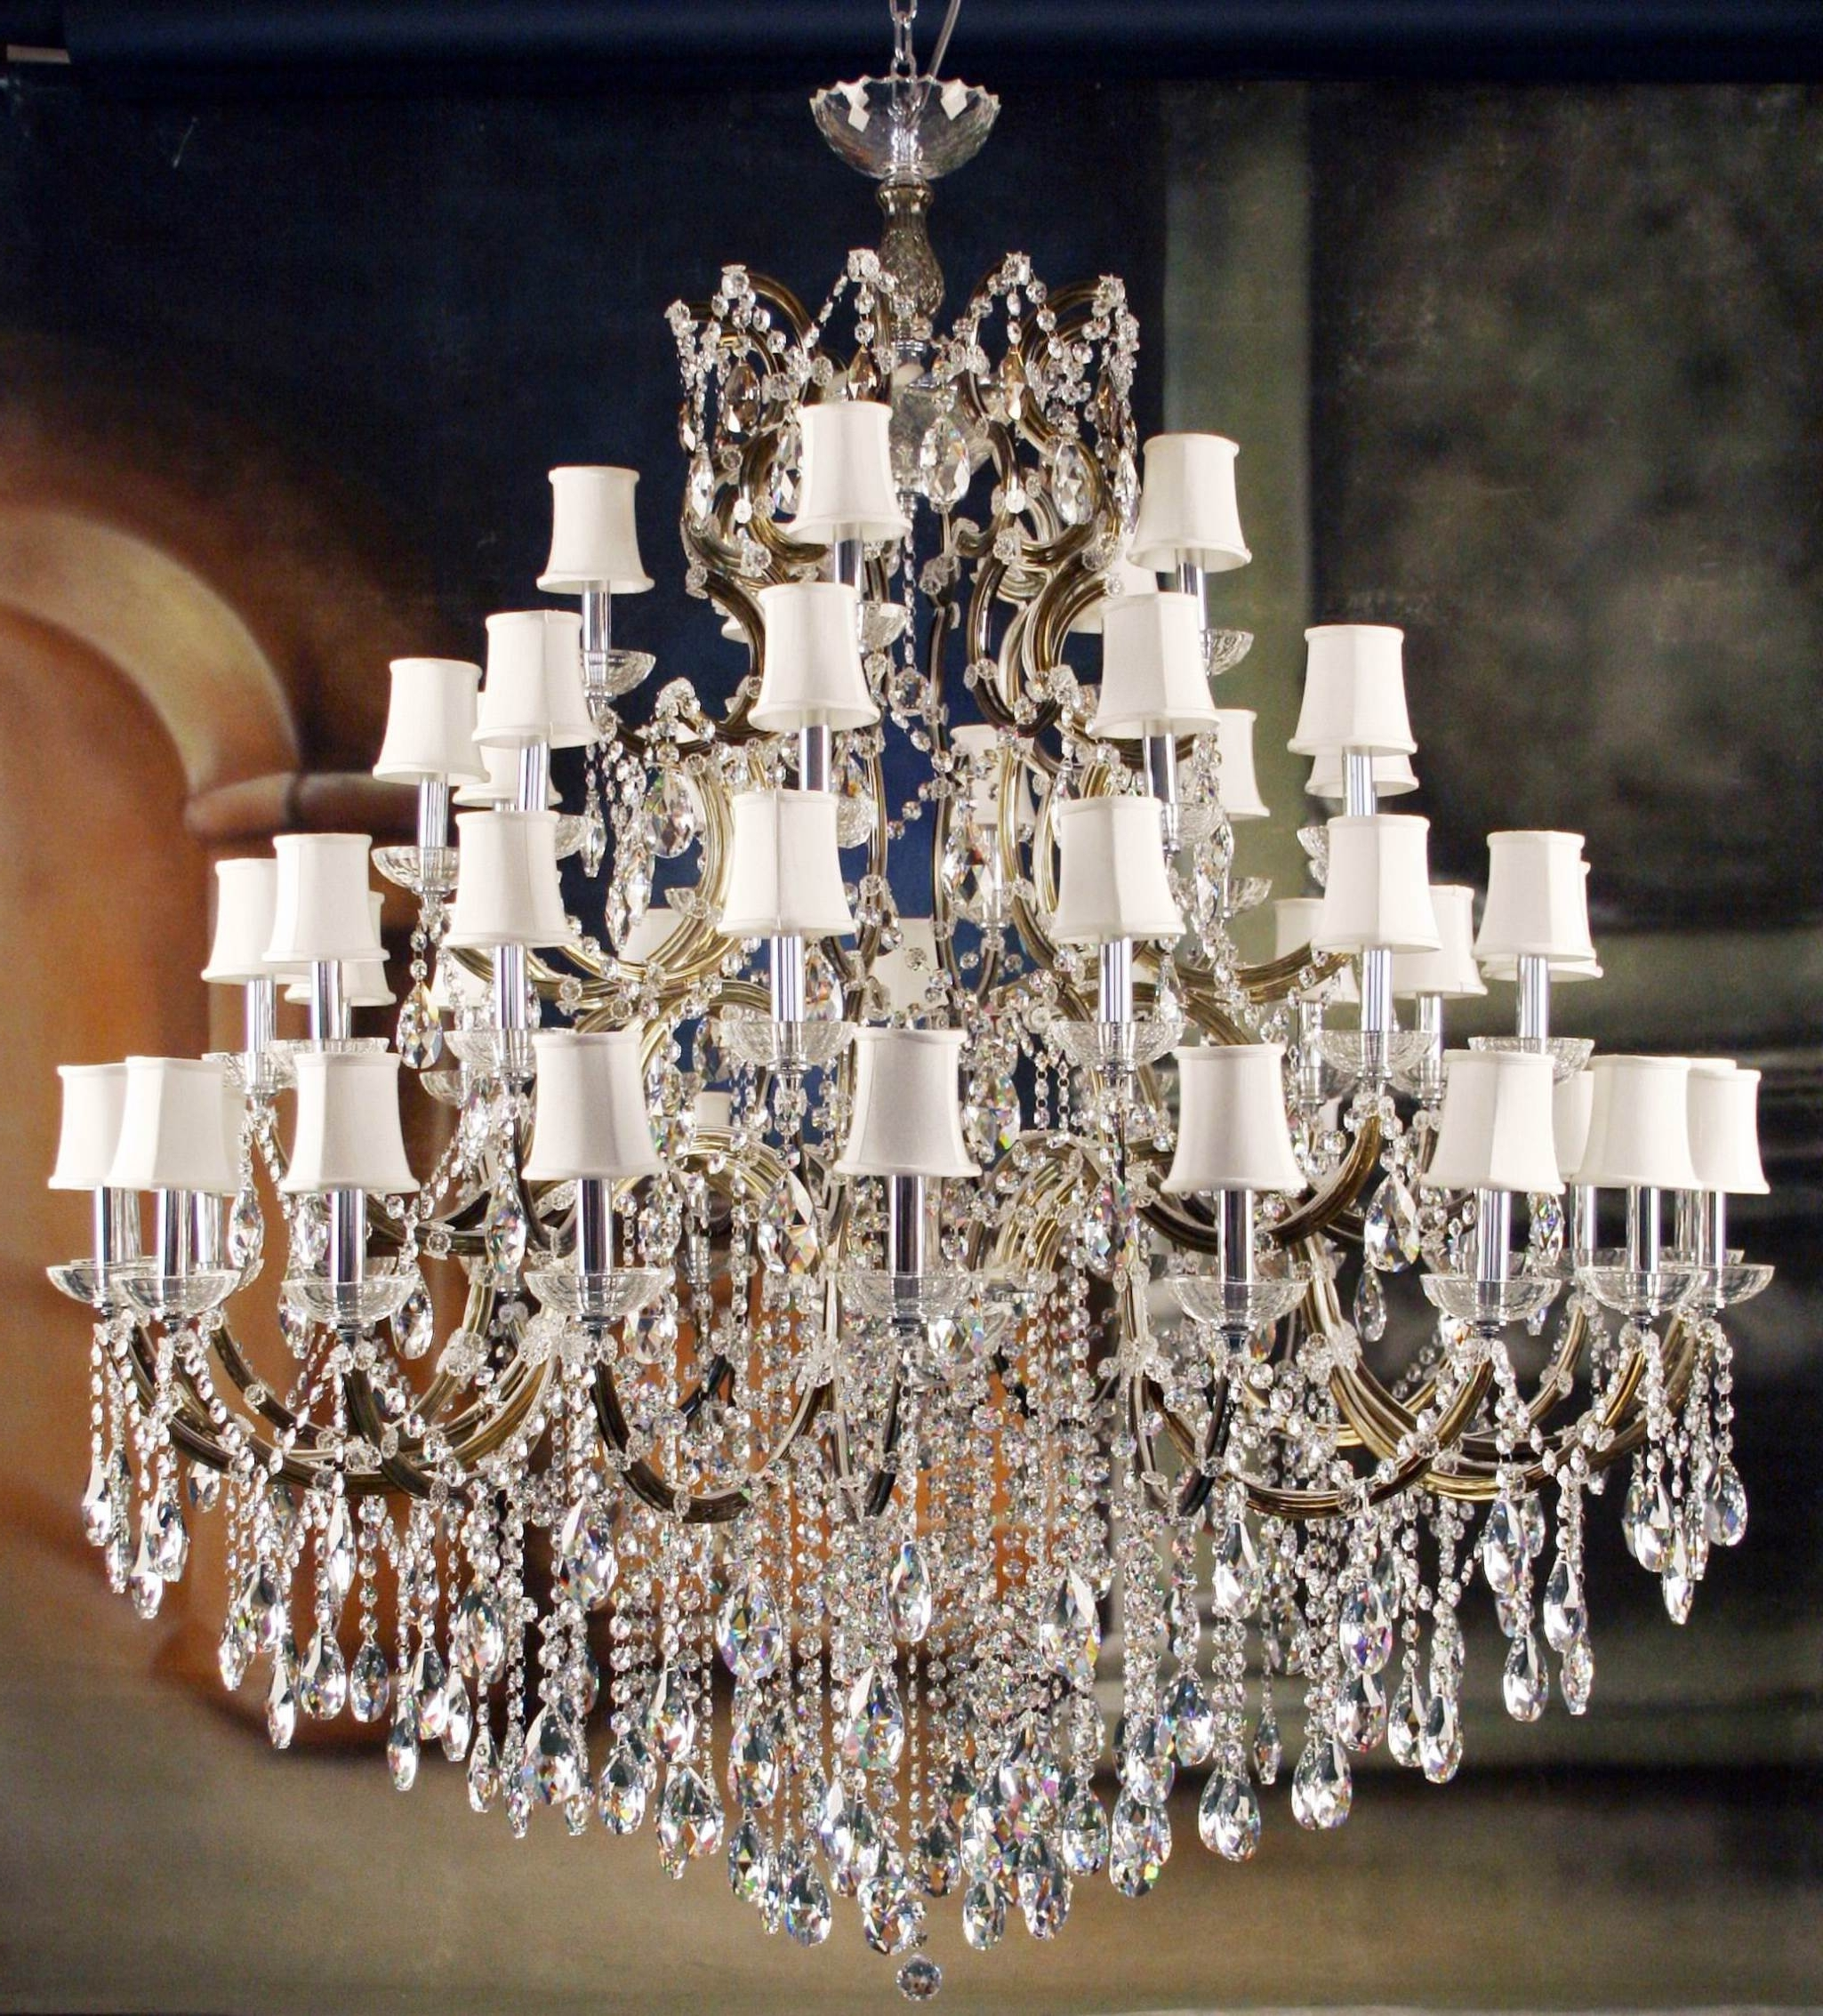 Popular Chandelier: Extraordinary Small Chandeliers For Bedrooms Mini Intended For Modern Small Chandeliers (View 17 of 20)